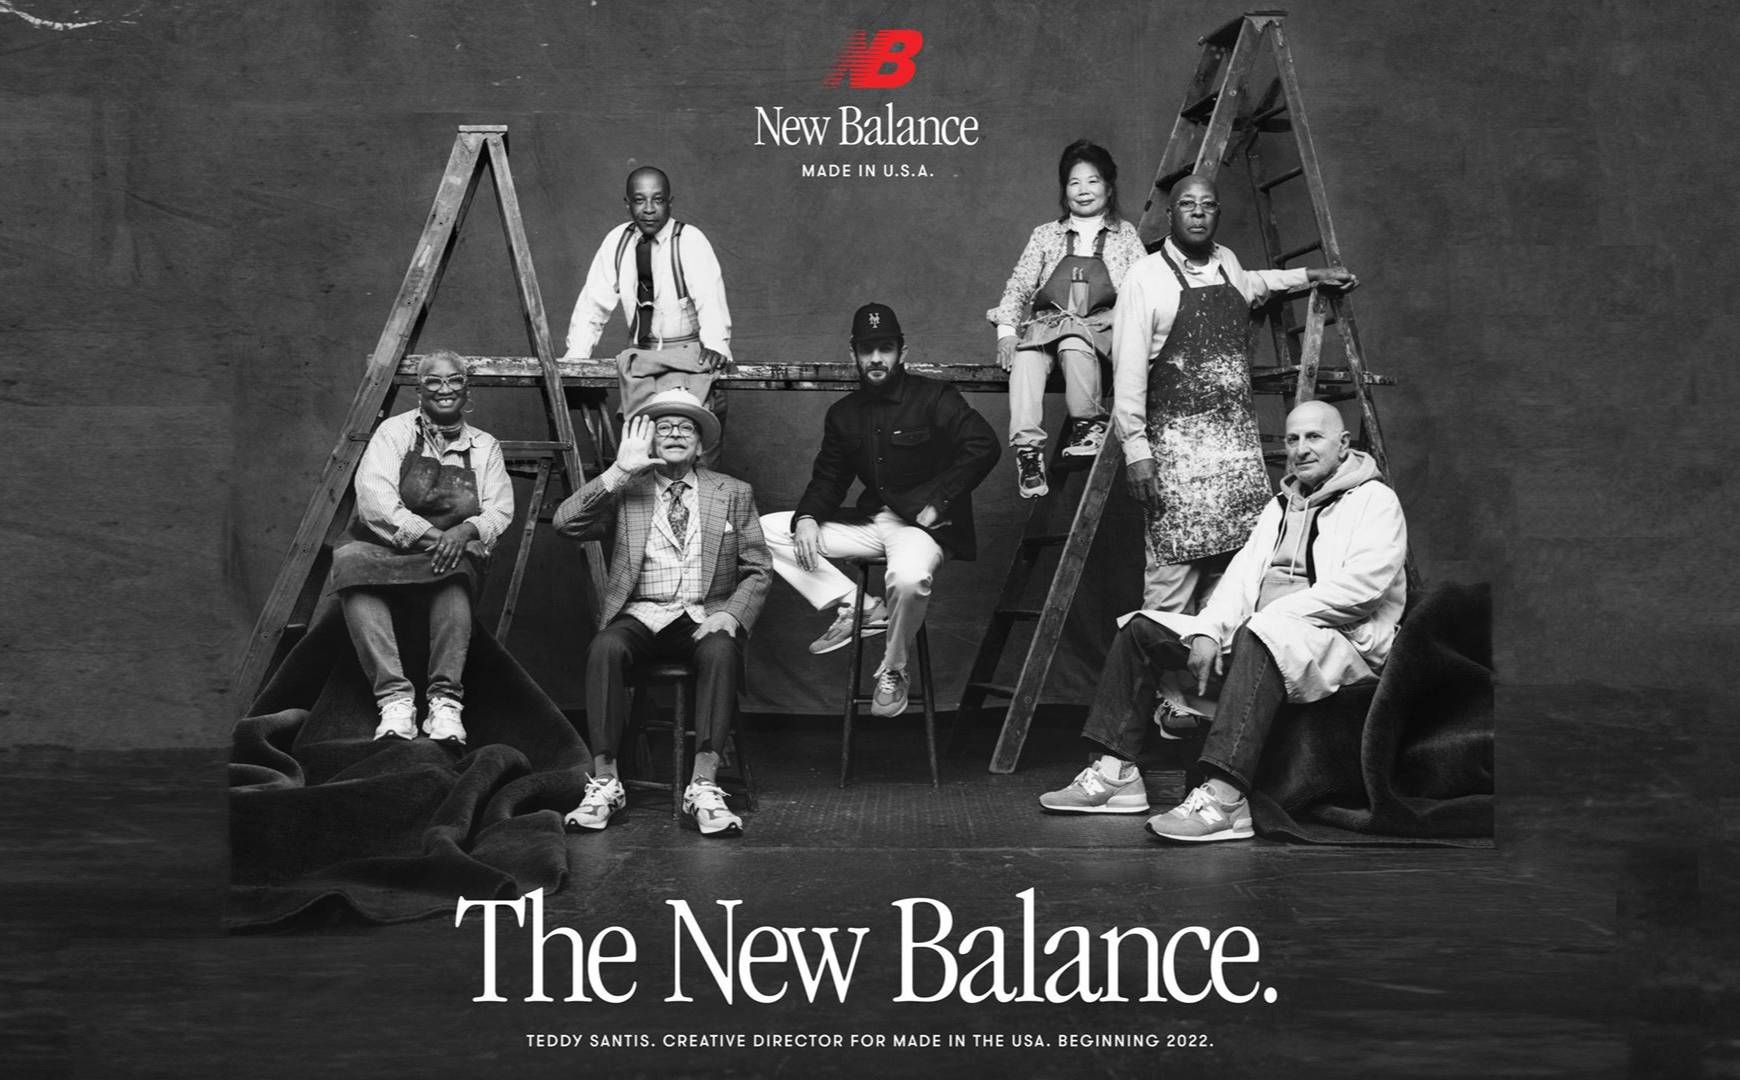 New Balance appoints Teddy Santis as creative director